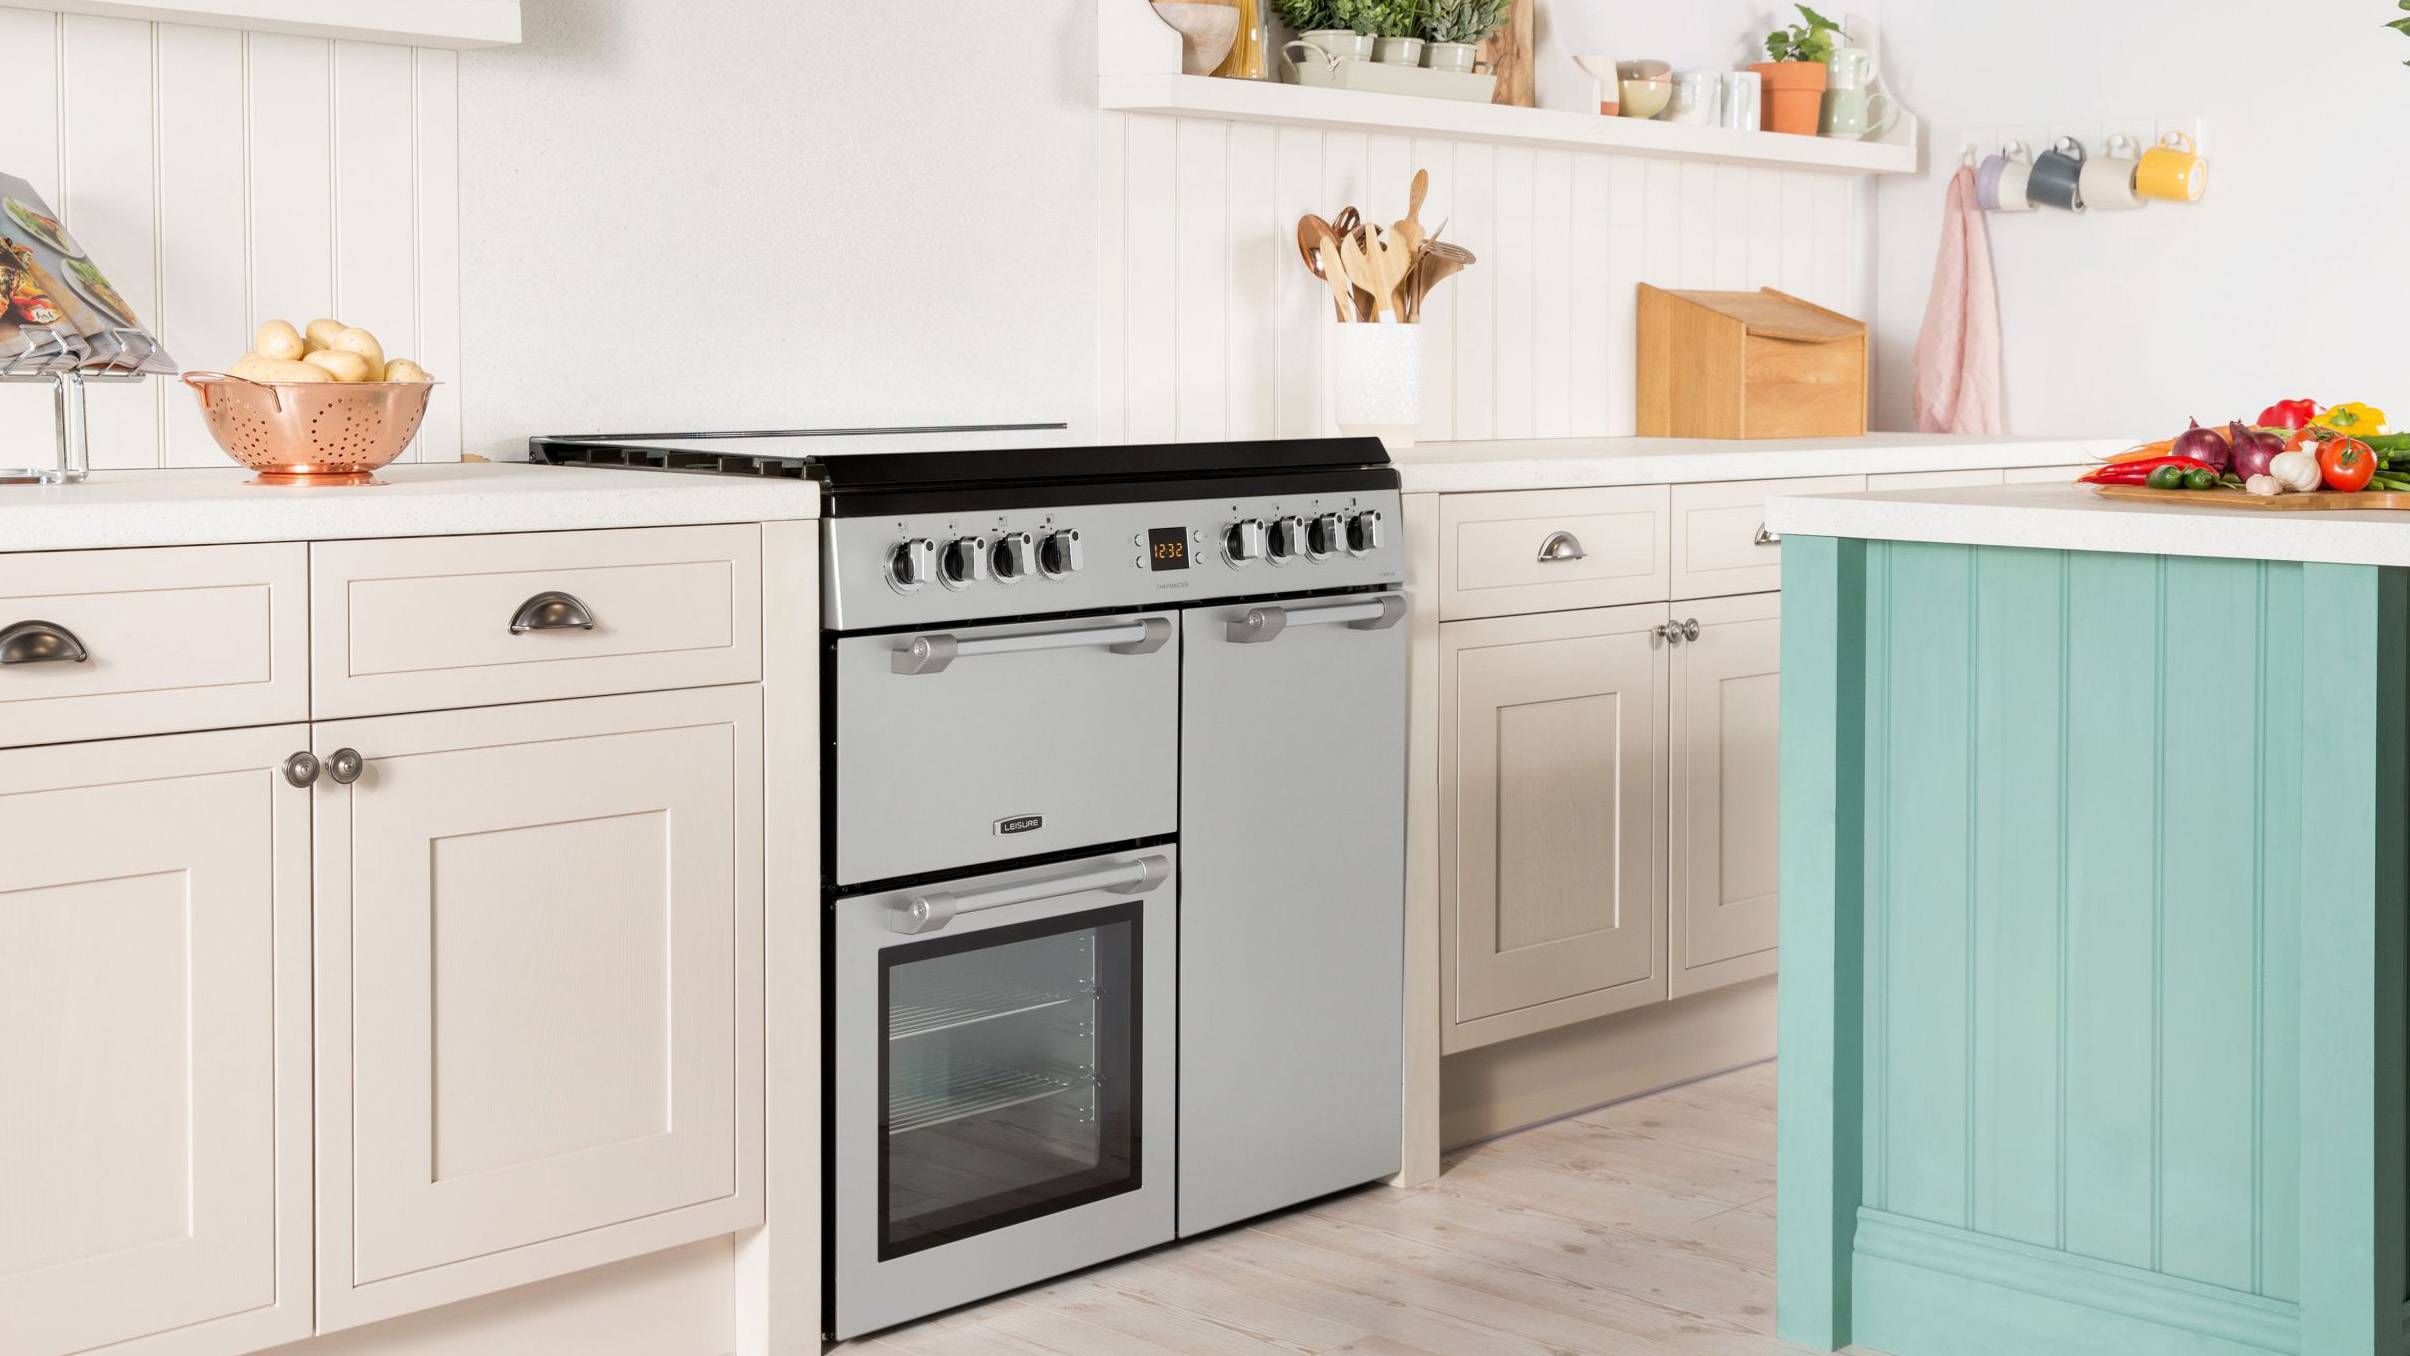 Best Double-Oven Ranges of 2019 - Gas and Electric Stove